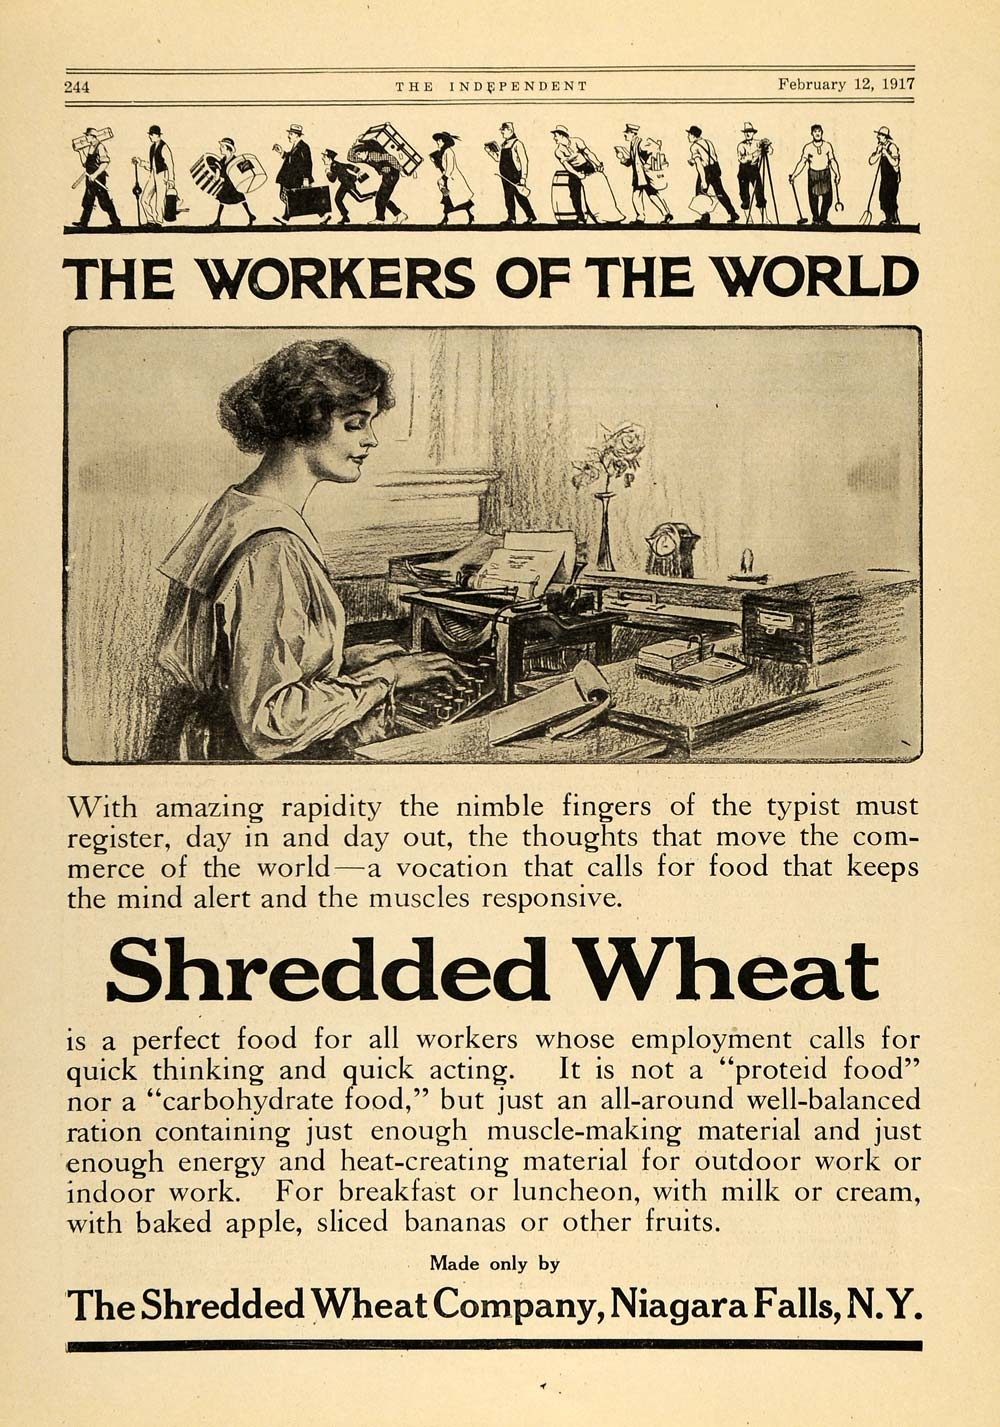 1917 Ad Workers of the World Shredded Wheat Typist Lady - ORIGINAL TIN2